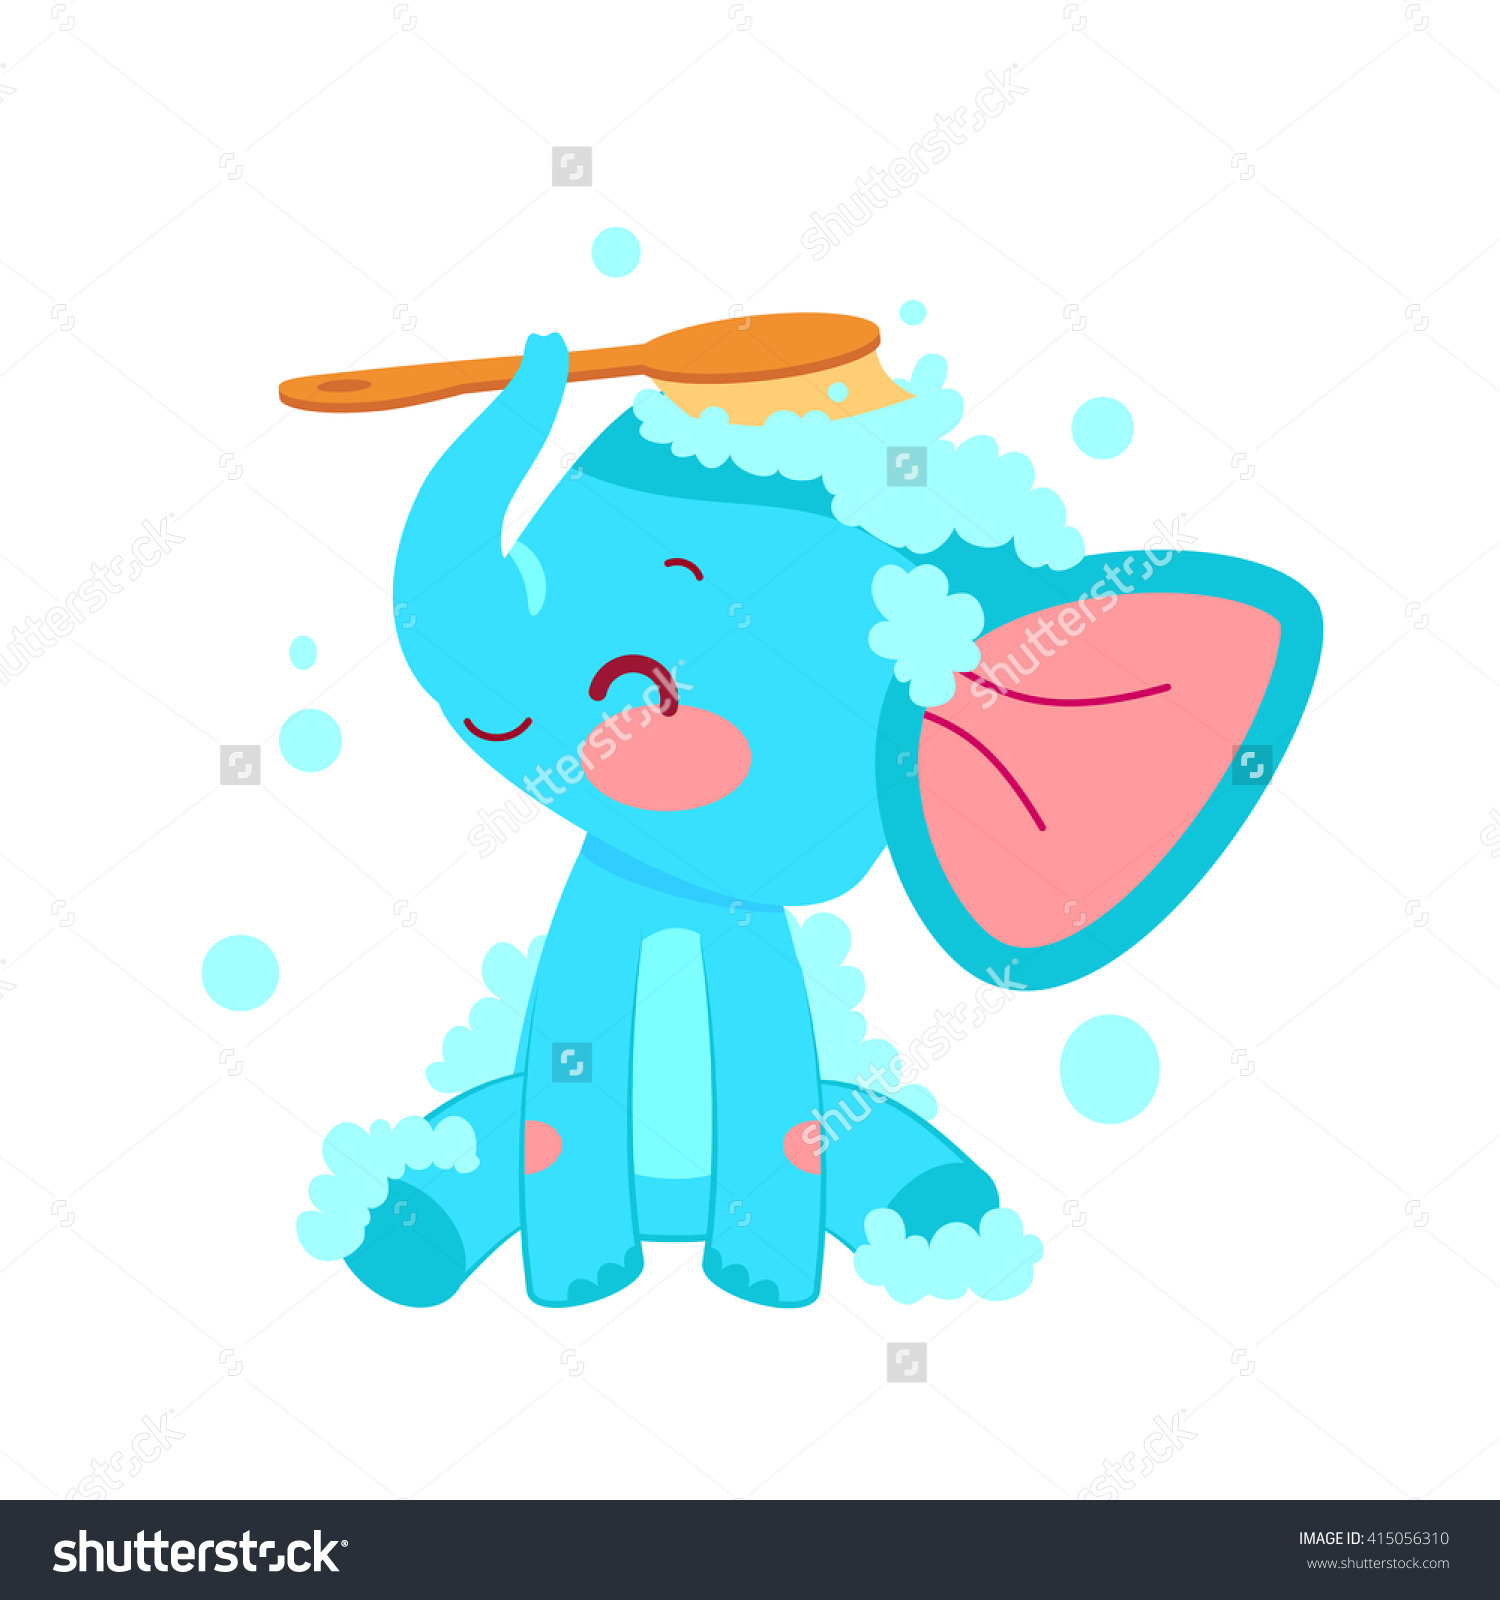 Cartoon Elephant Bathing Lather Illustration Vector Stock Vector.